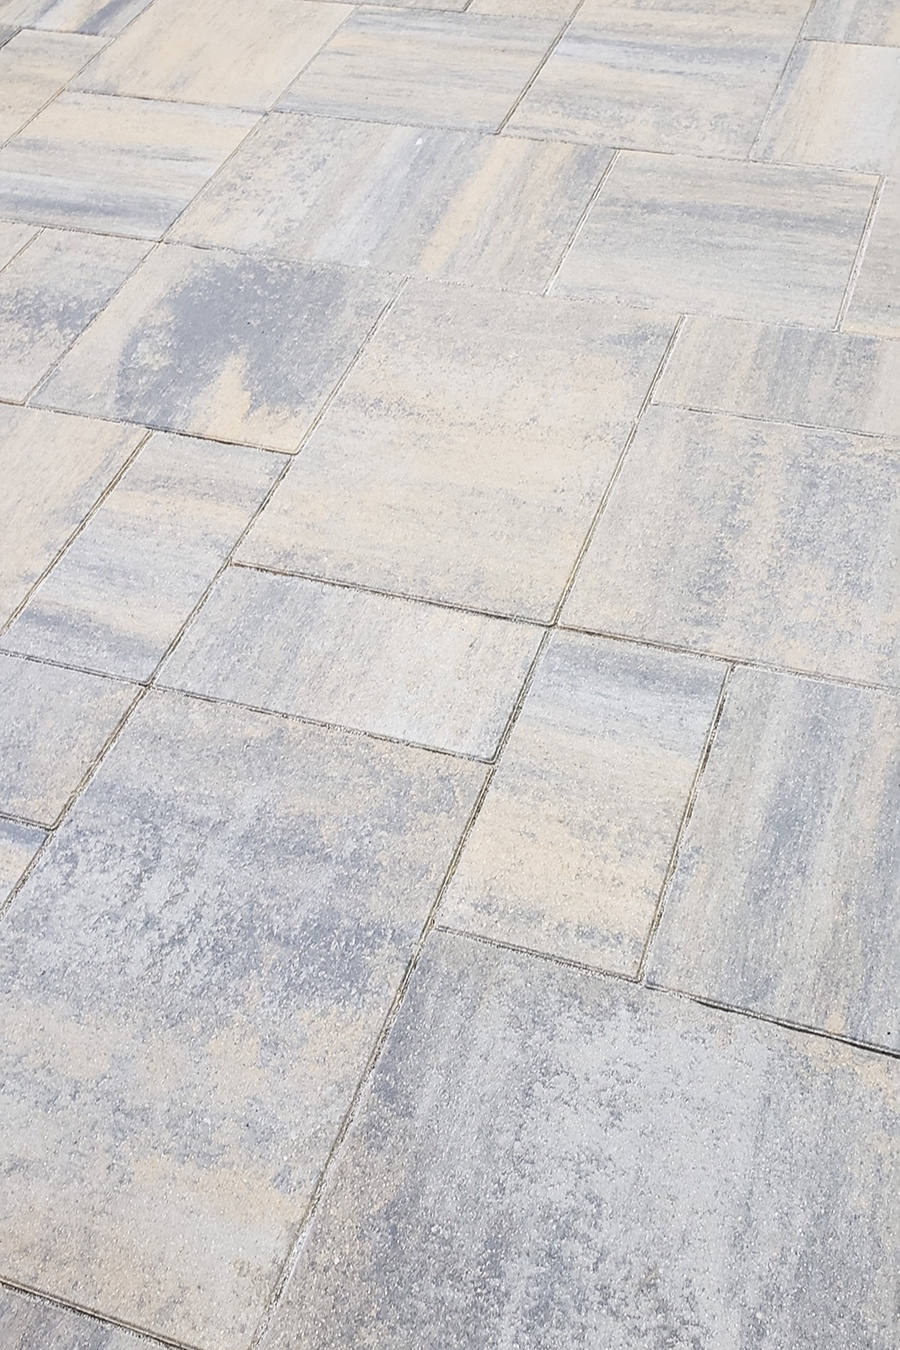 MANHATTAN - Smooth and modern, Oberfields Manhattan pavers consist of a three-piece system that mimics the industrial skyline of Manhattan. Either installation pattern accounts for various joints that give way to a smooth, clean appearance.